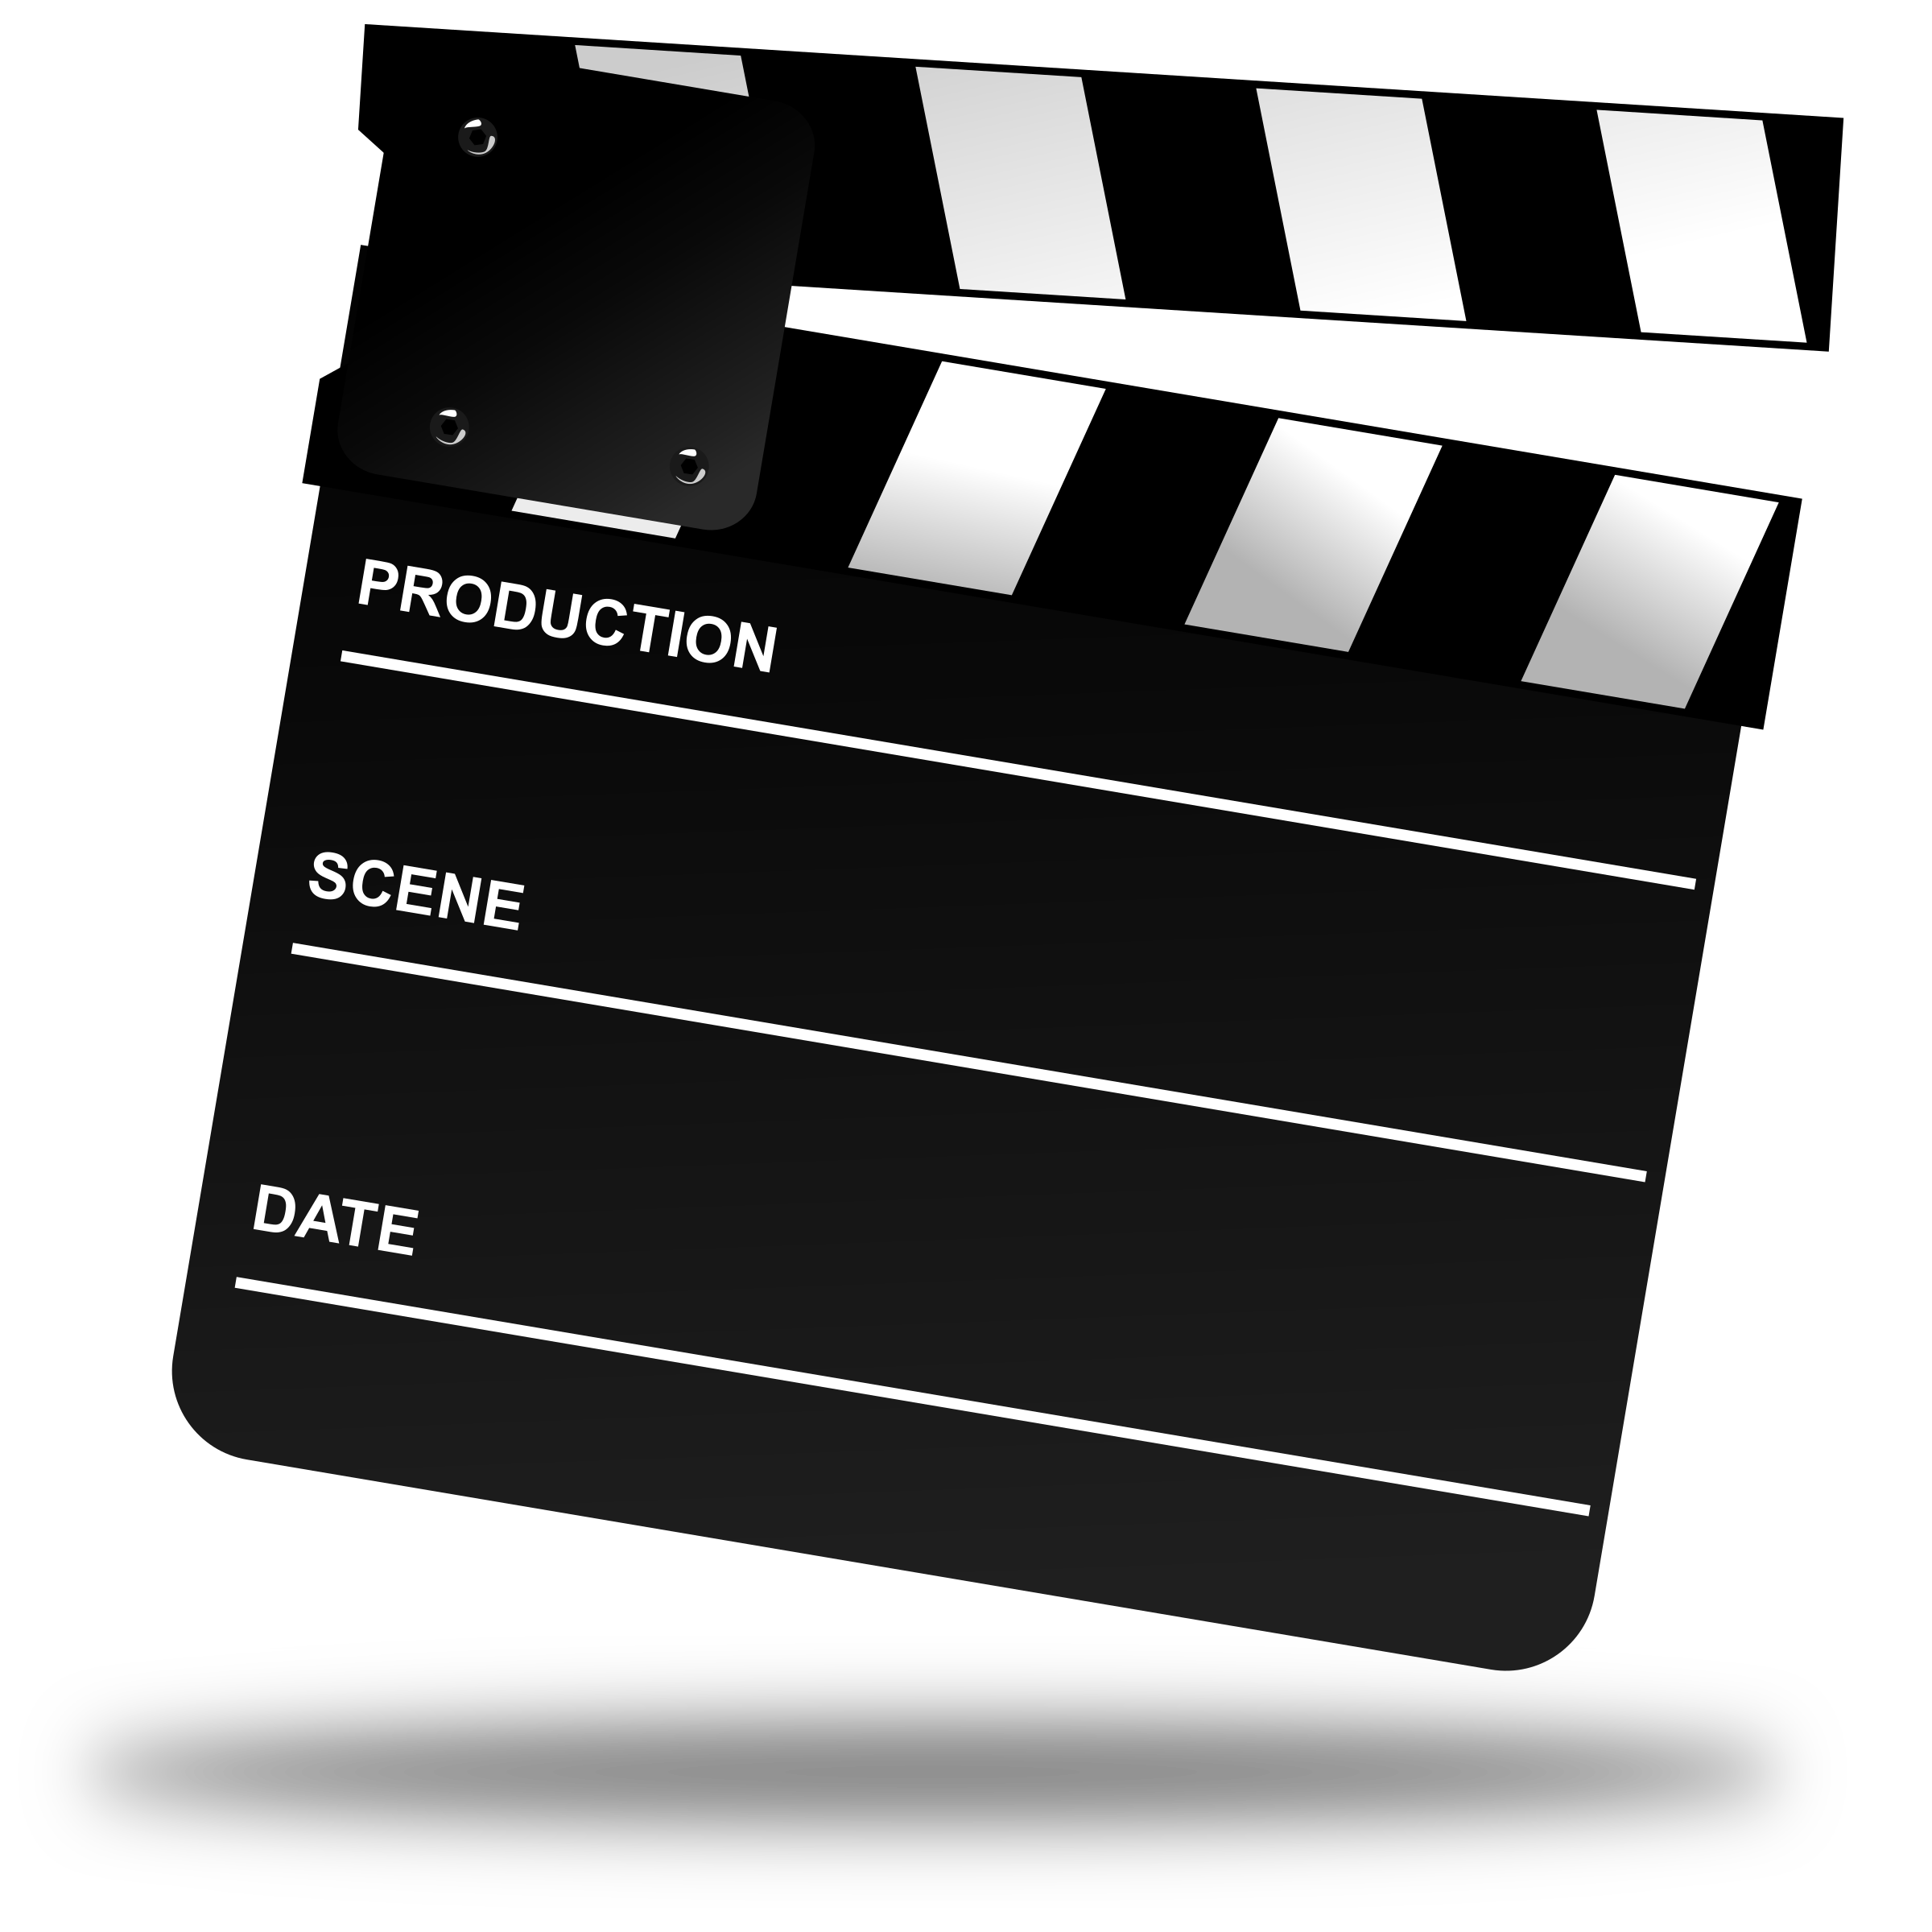 Film clipart clapper board. Movie big image png